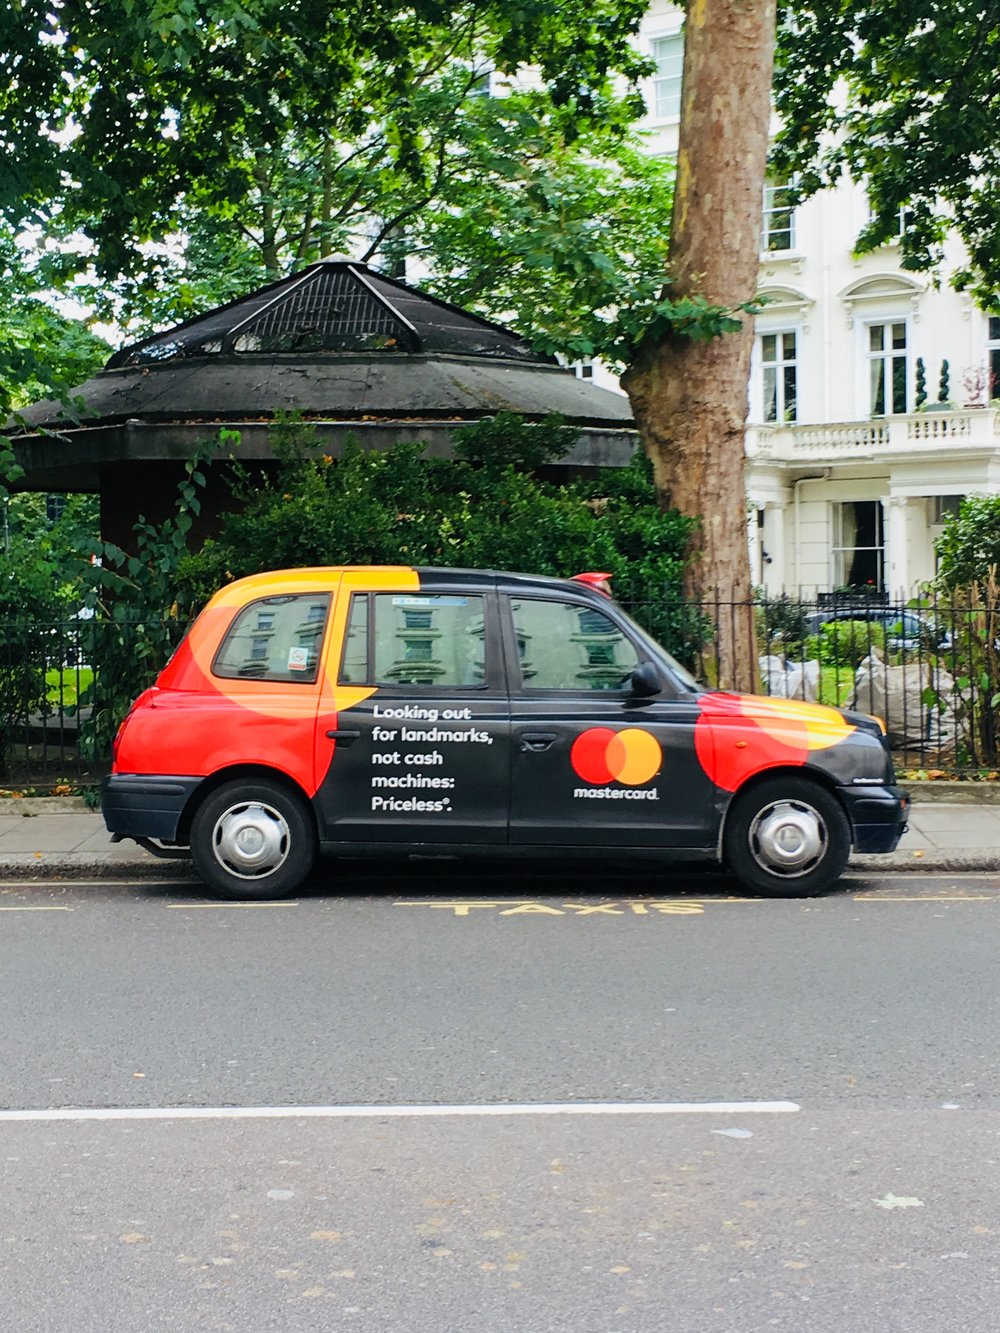 This ad shows off the MasterCard rebrand by Pentegram. The logo is used as a graphic element on different sections of the taxi.